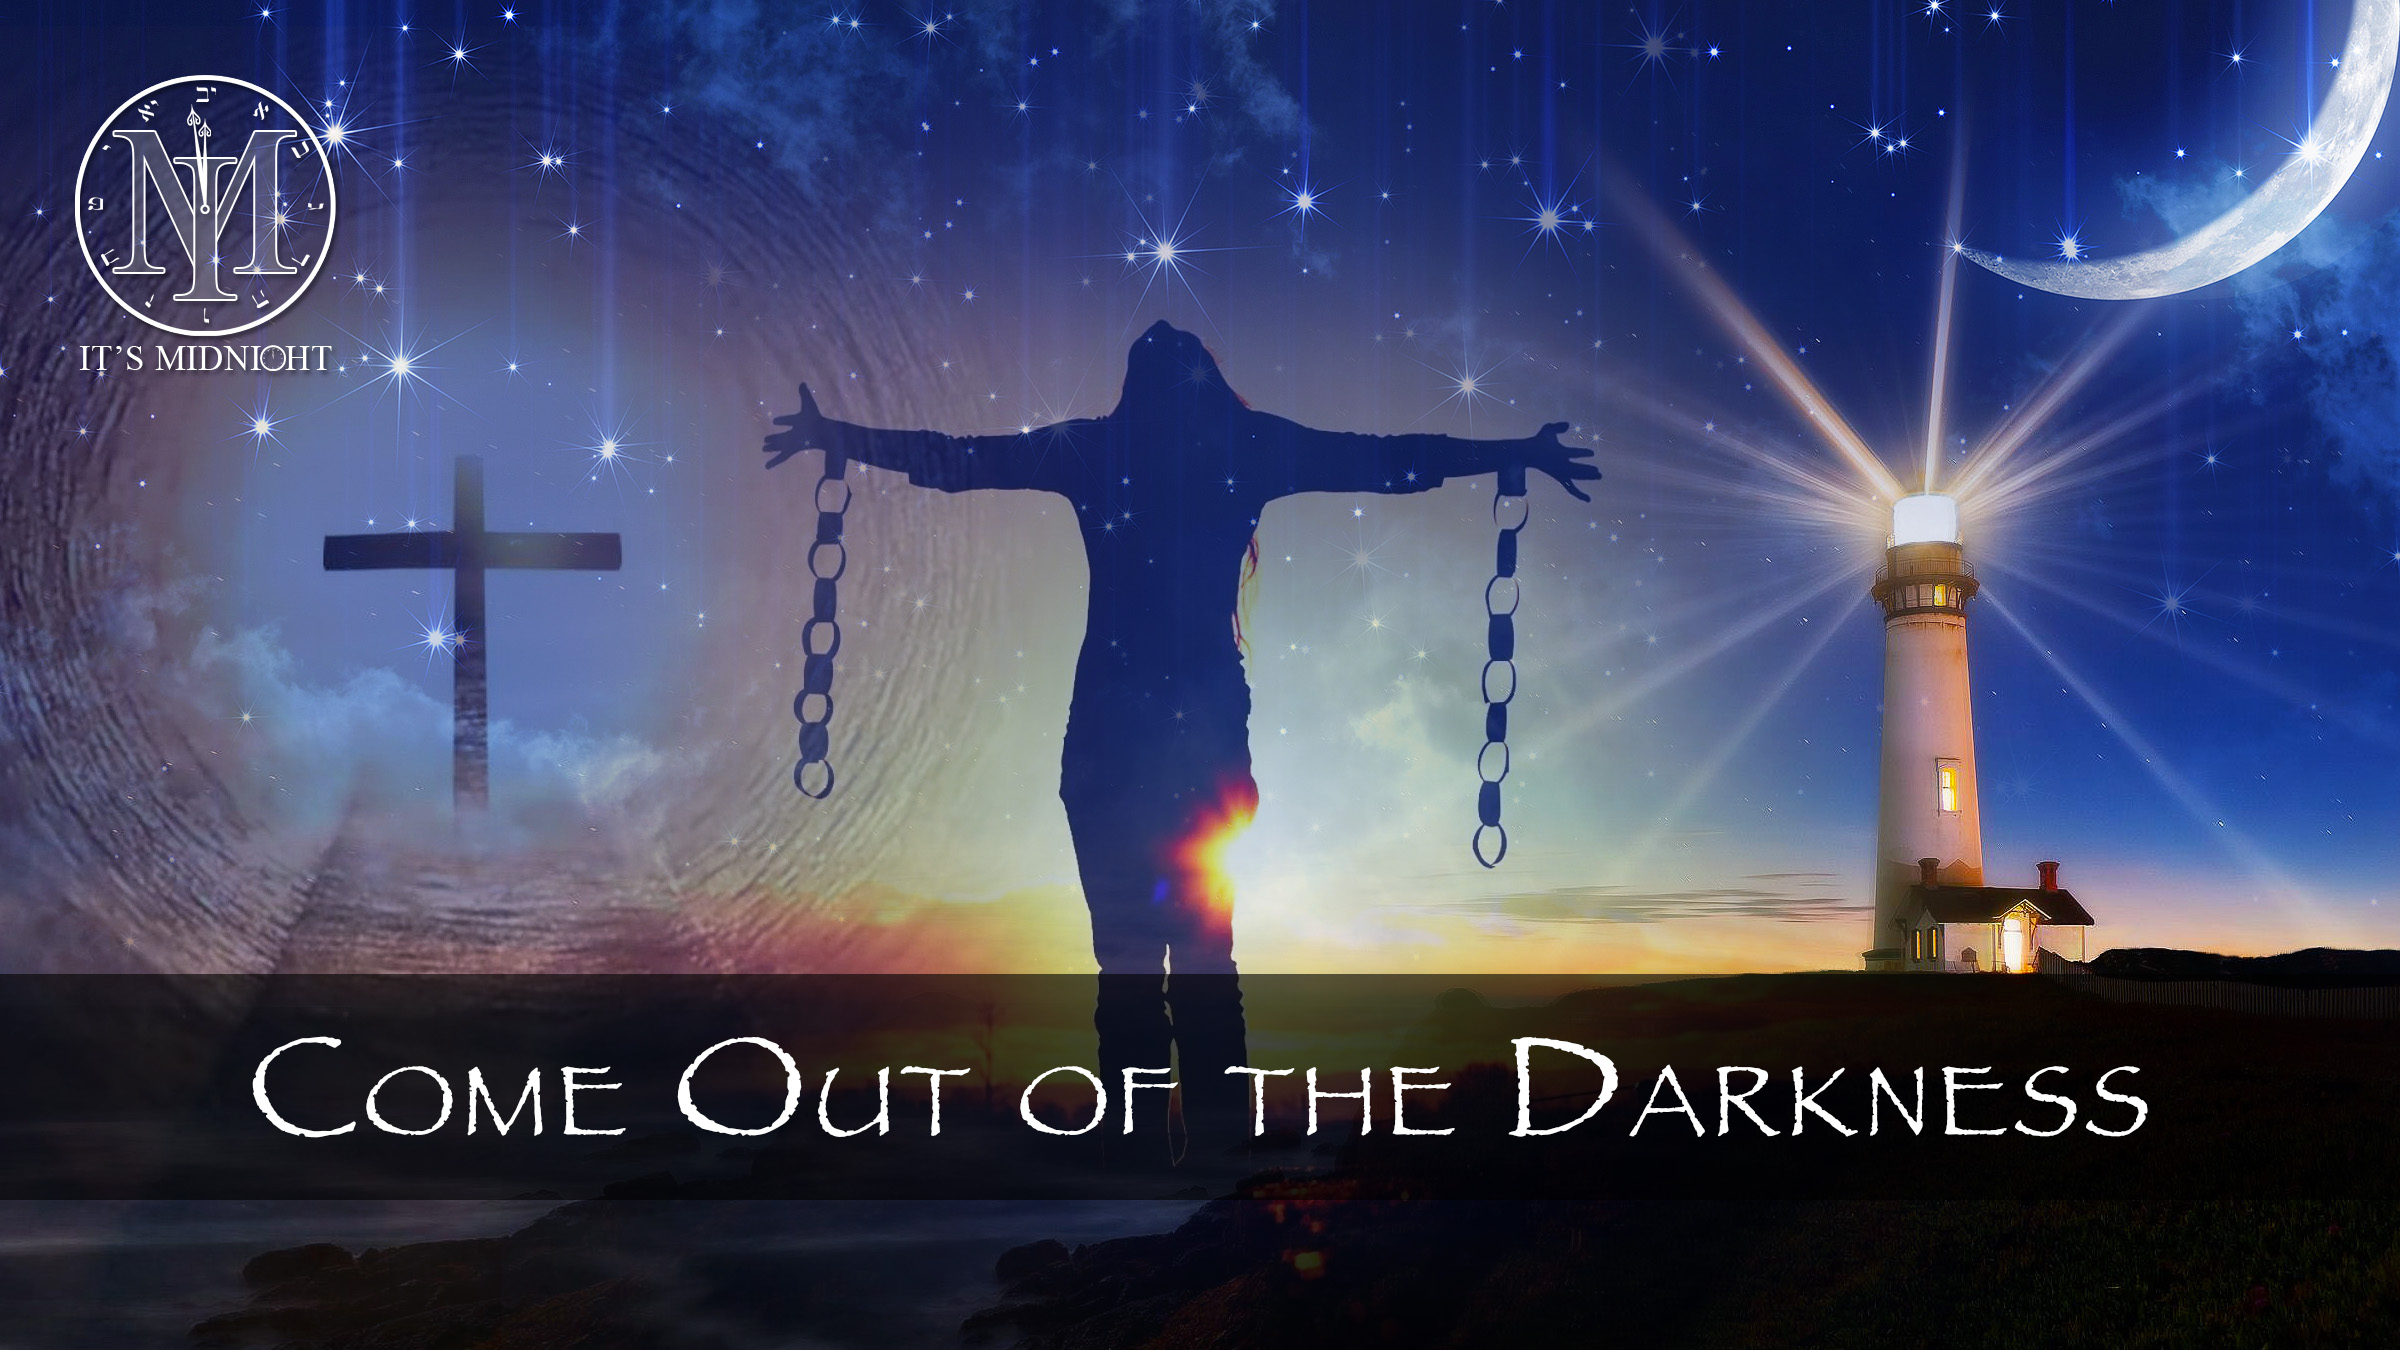 Come Out of the Darkness Thumbnail (16x9) for YouTube.jpg